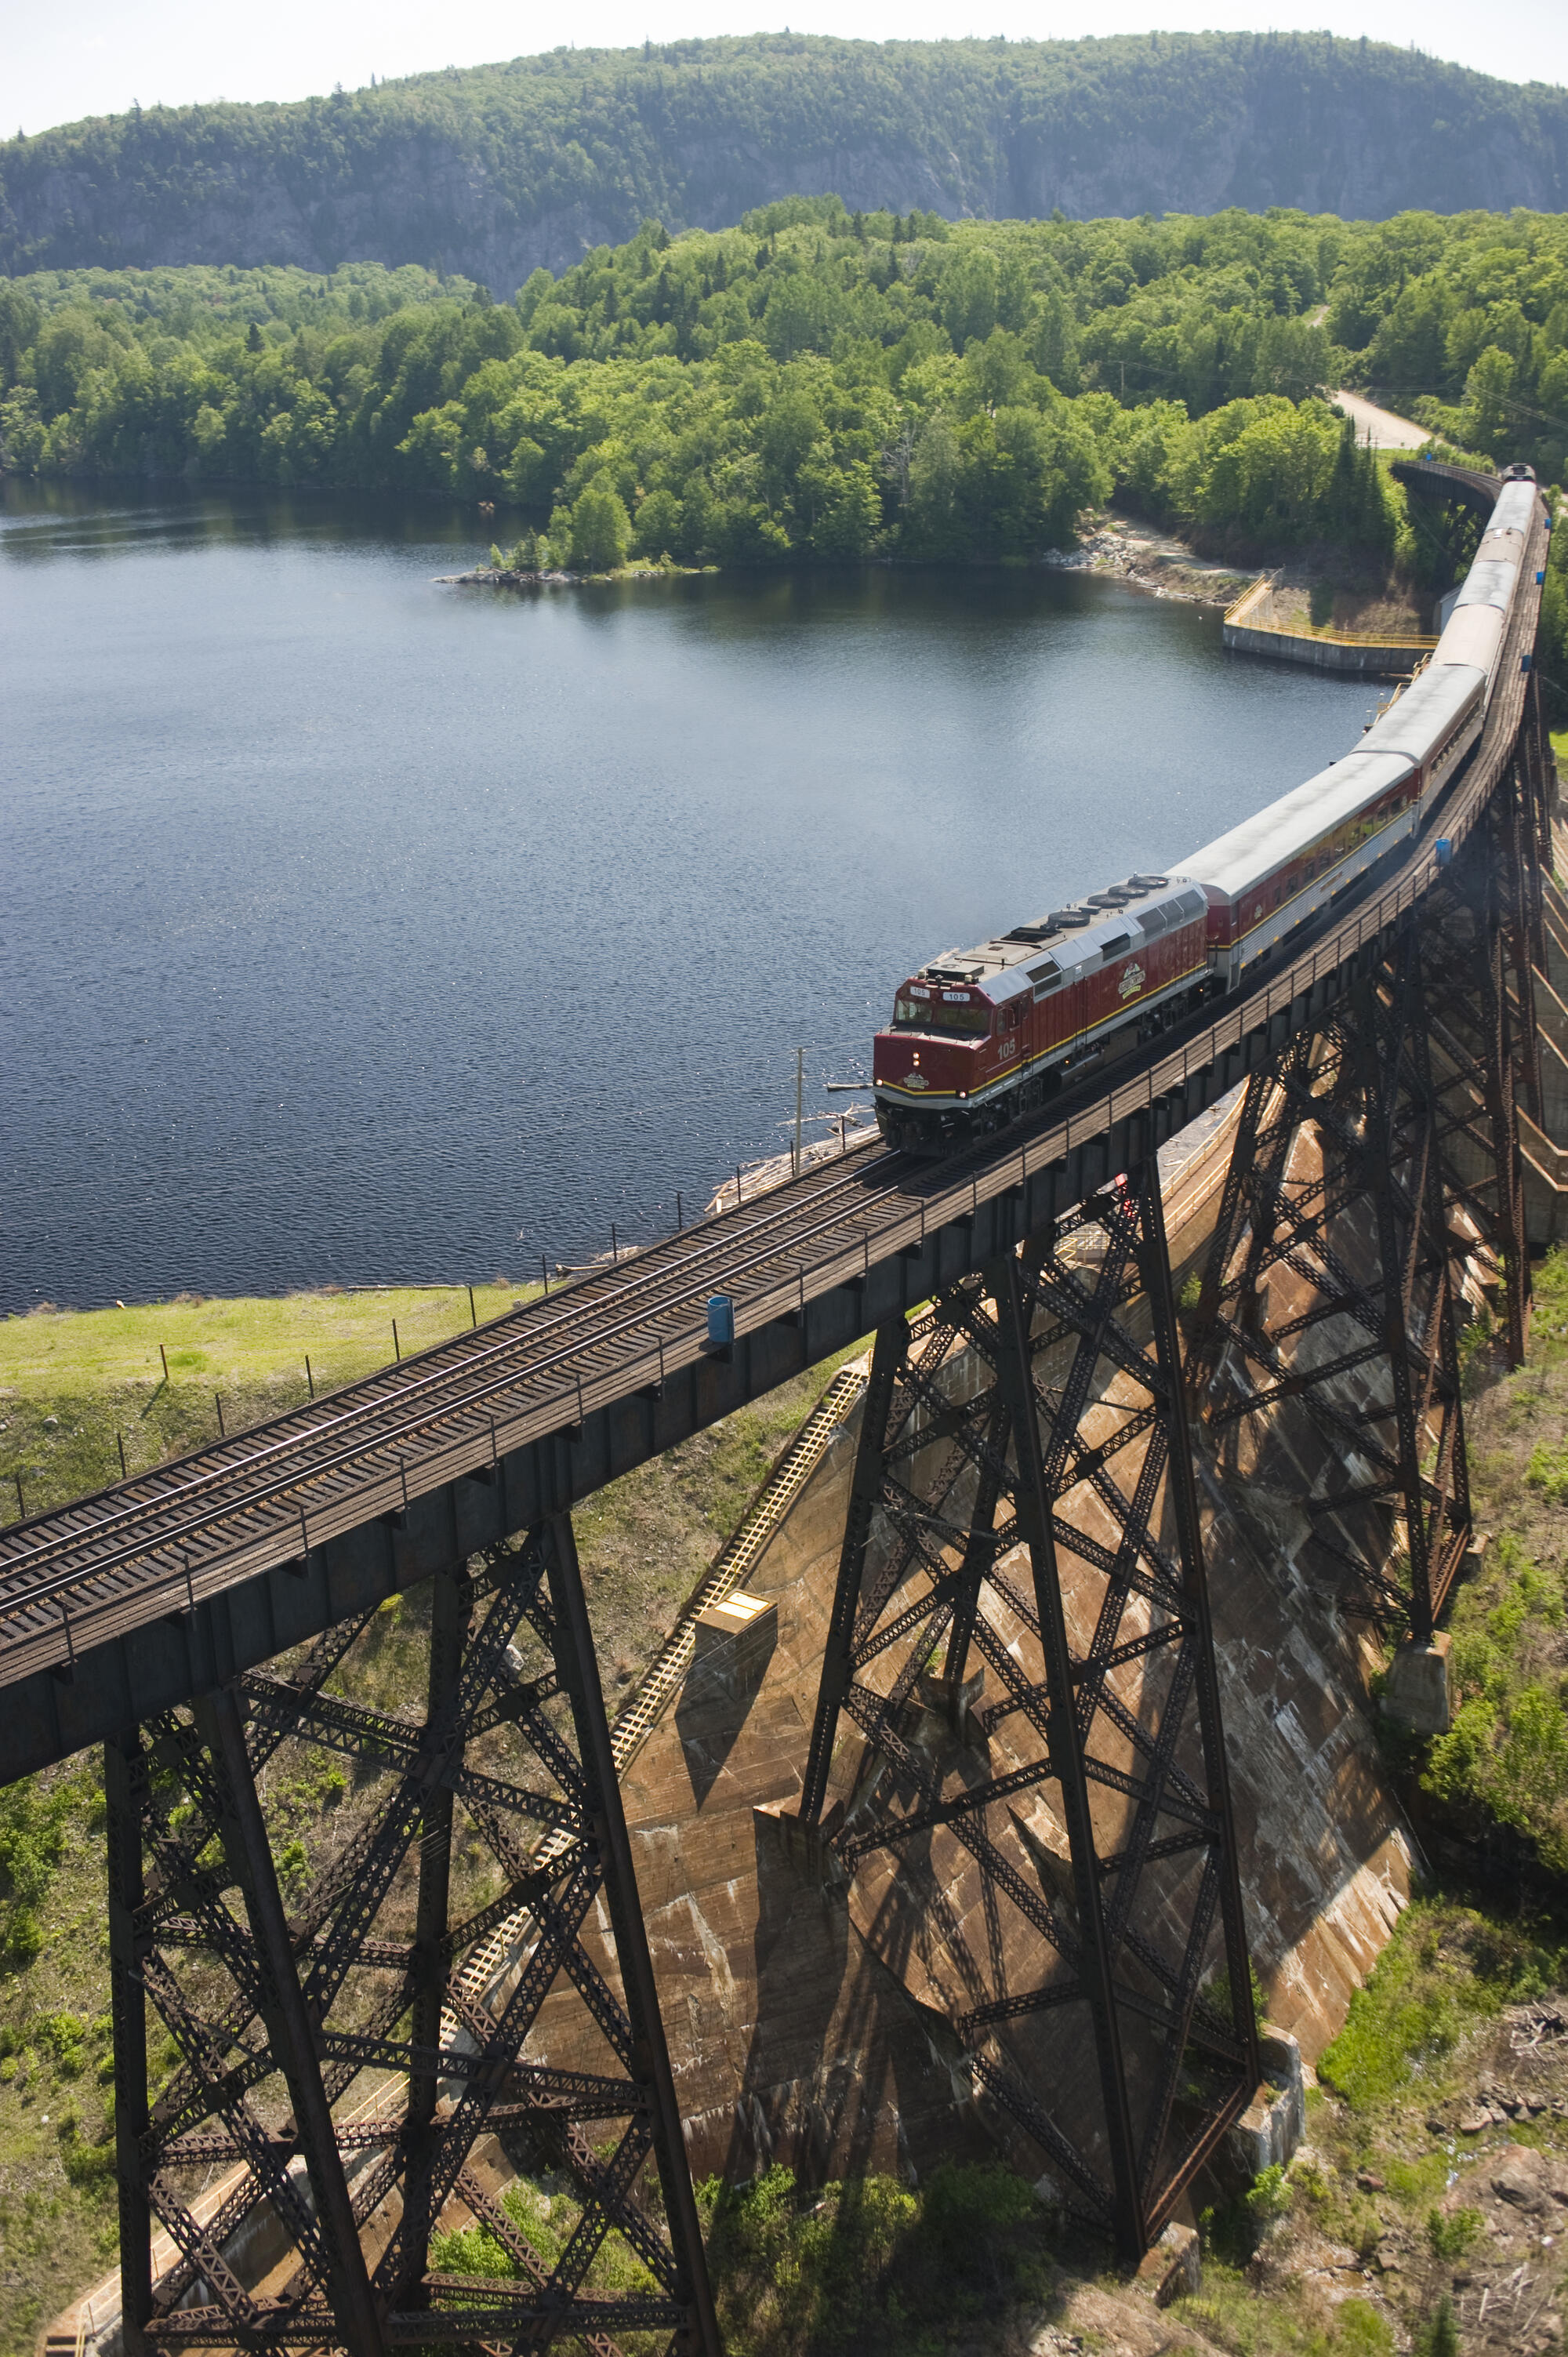 the agawa tour train: a canadian natural wonder in sault ste.marie